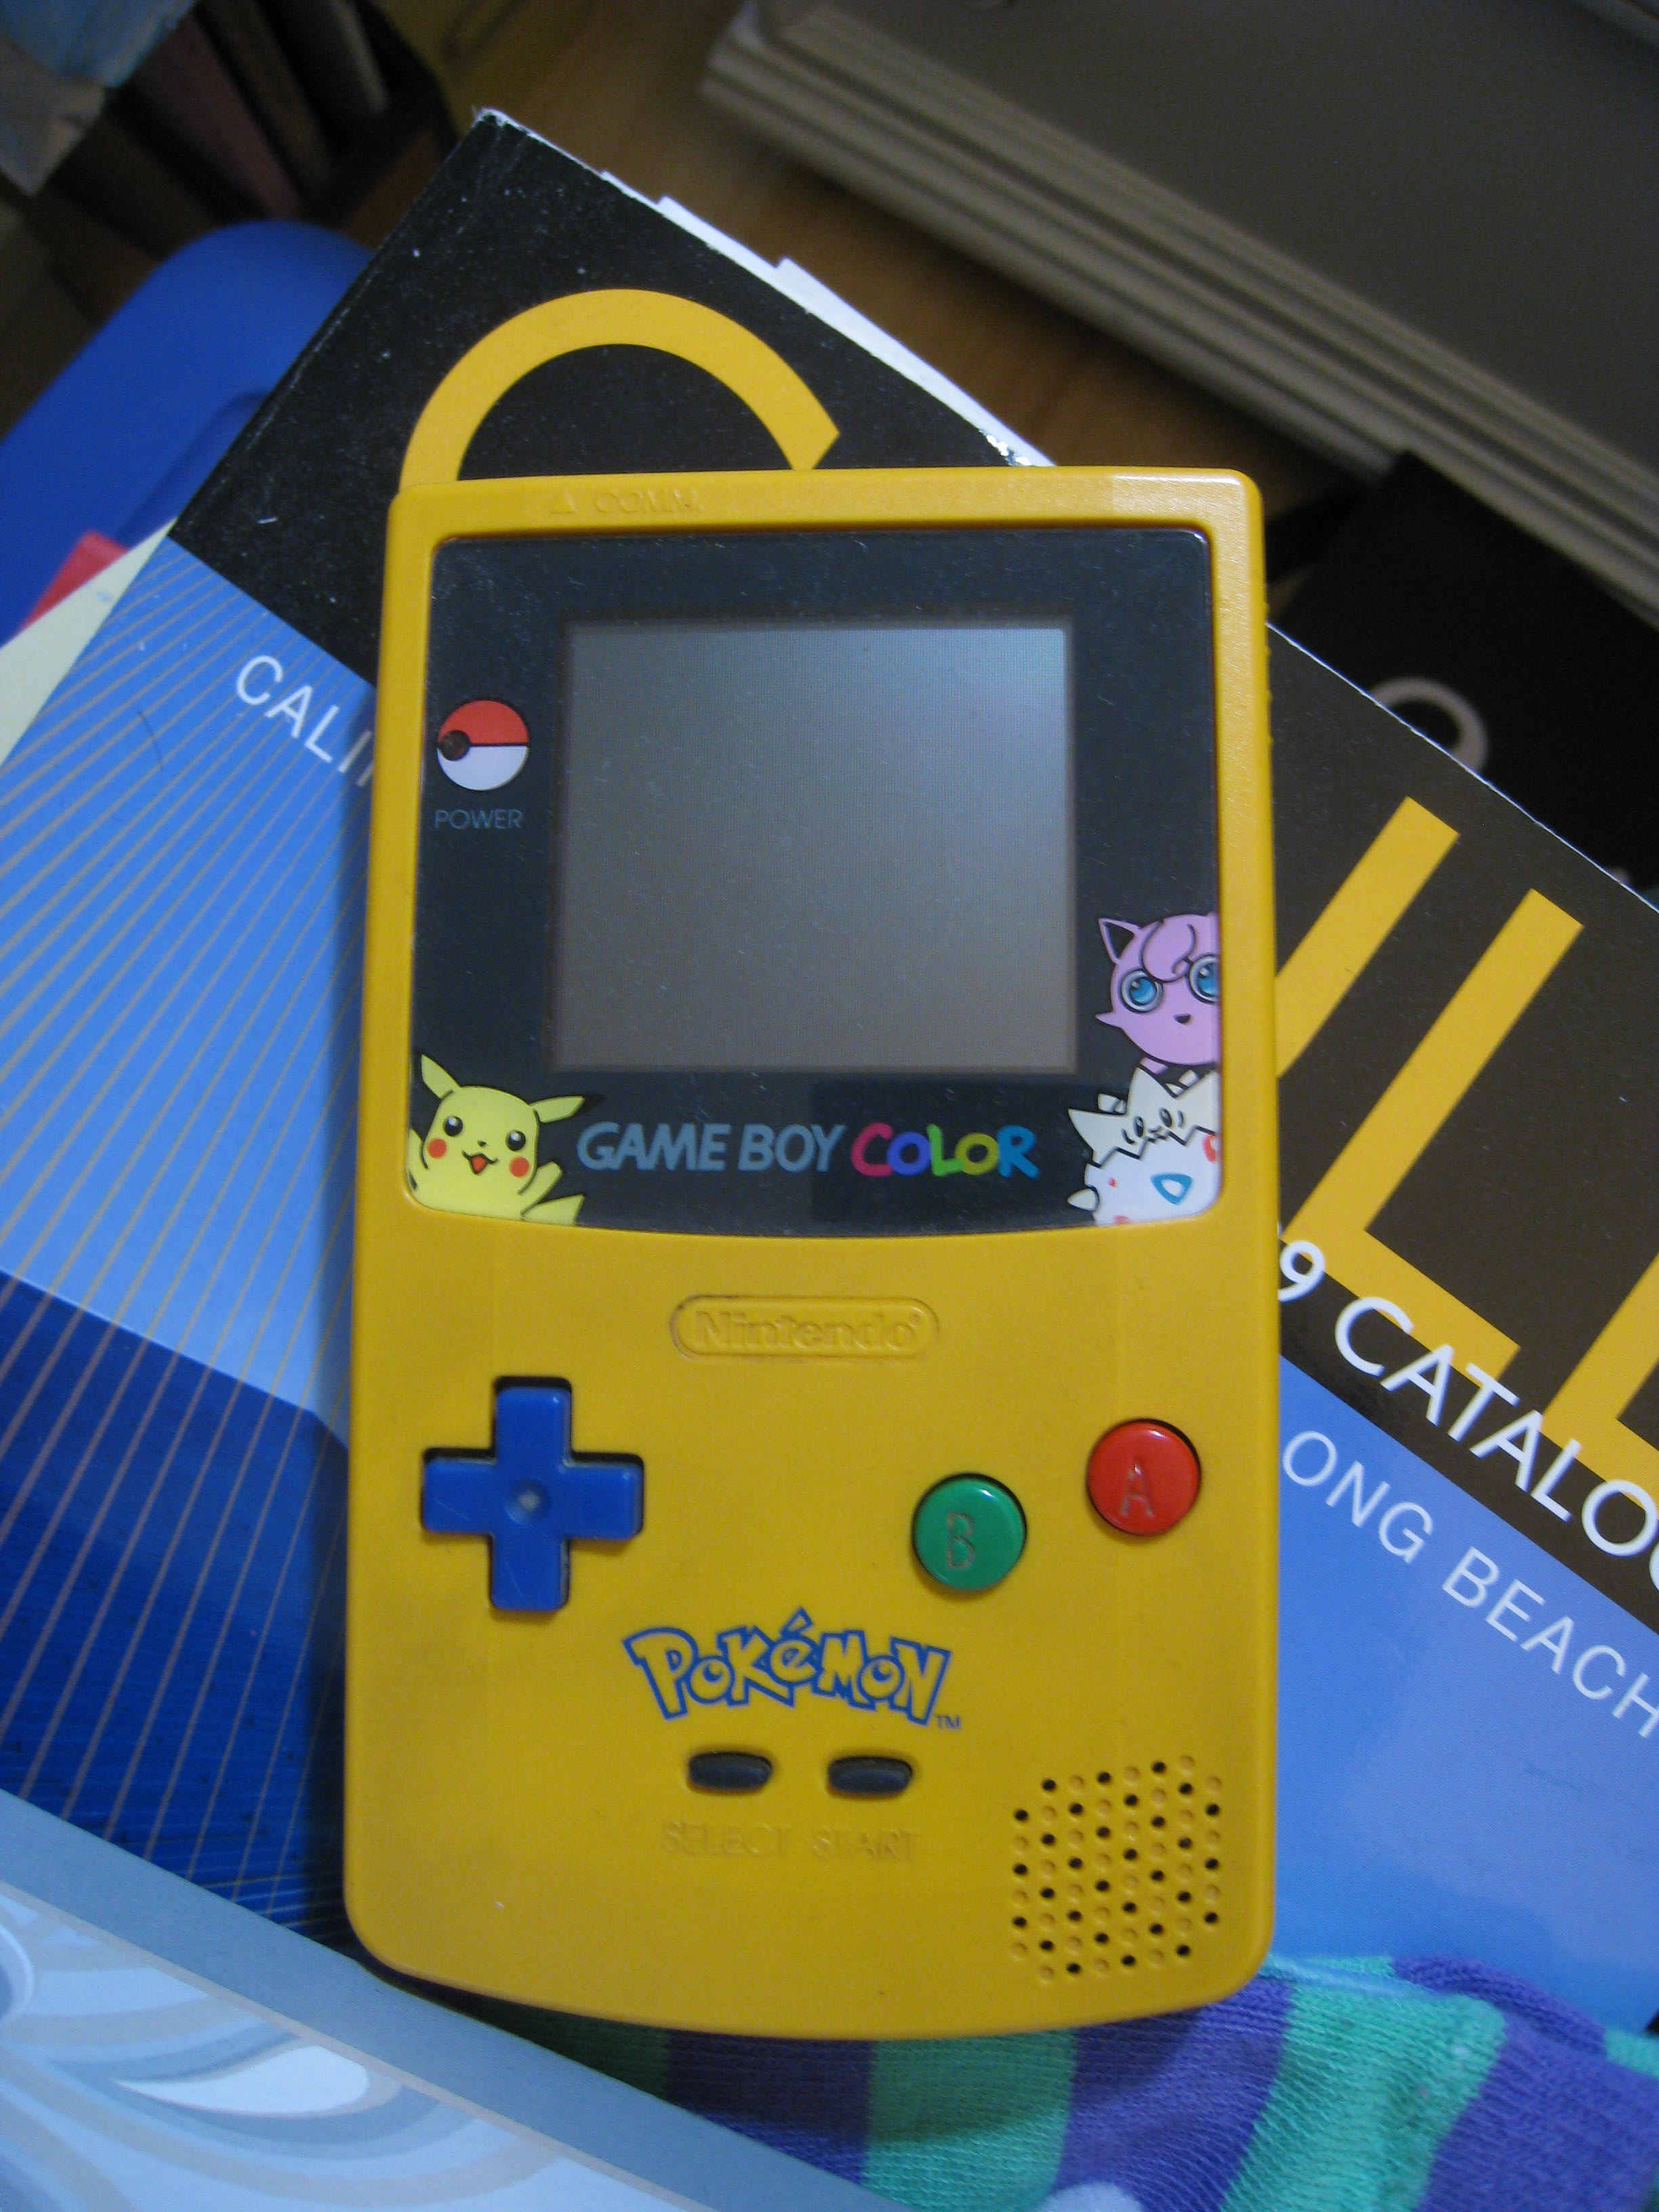 Gameboy color and pokemon yellow - The Special Pikachu Yellow Edition Of The Gameboy Color